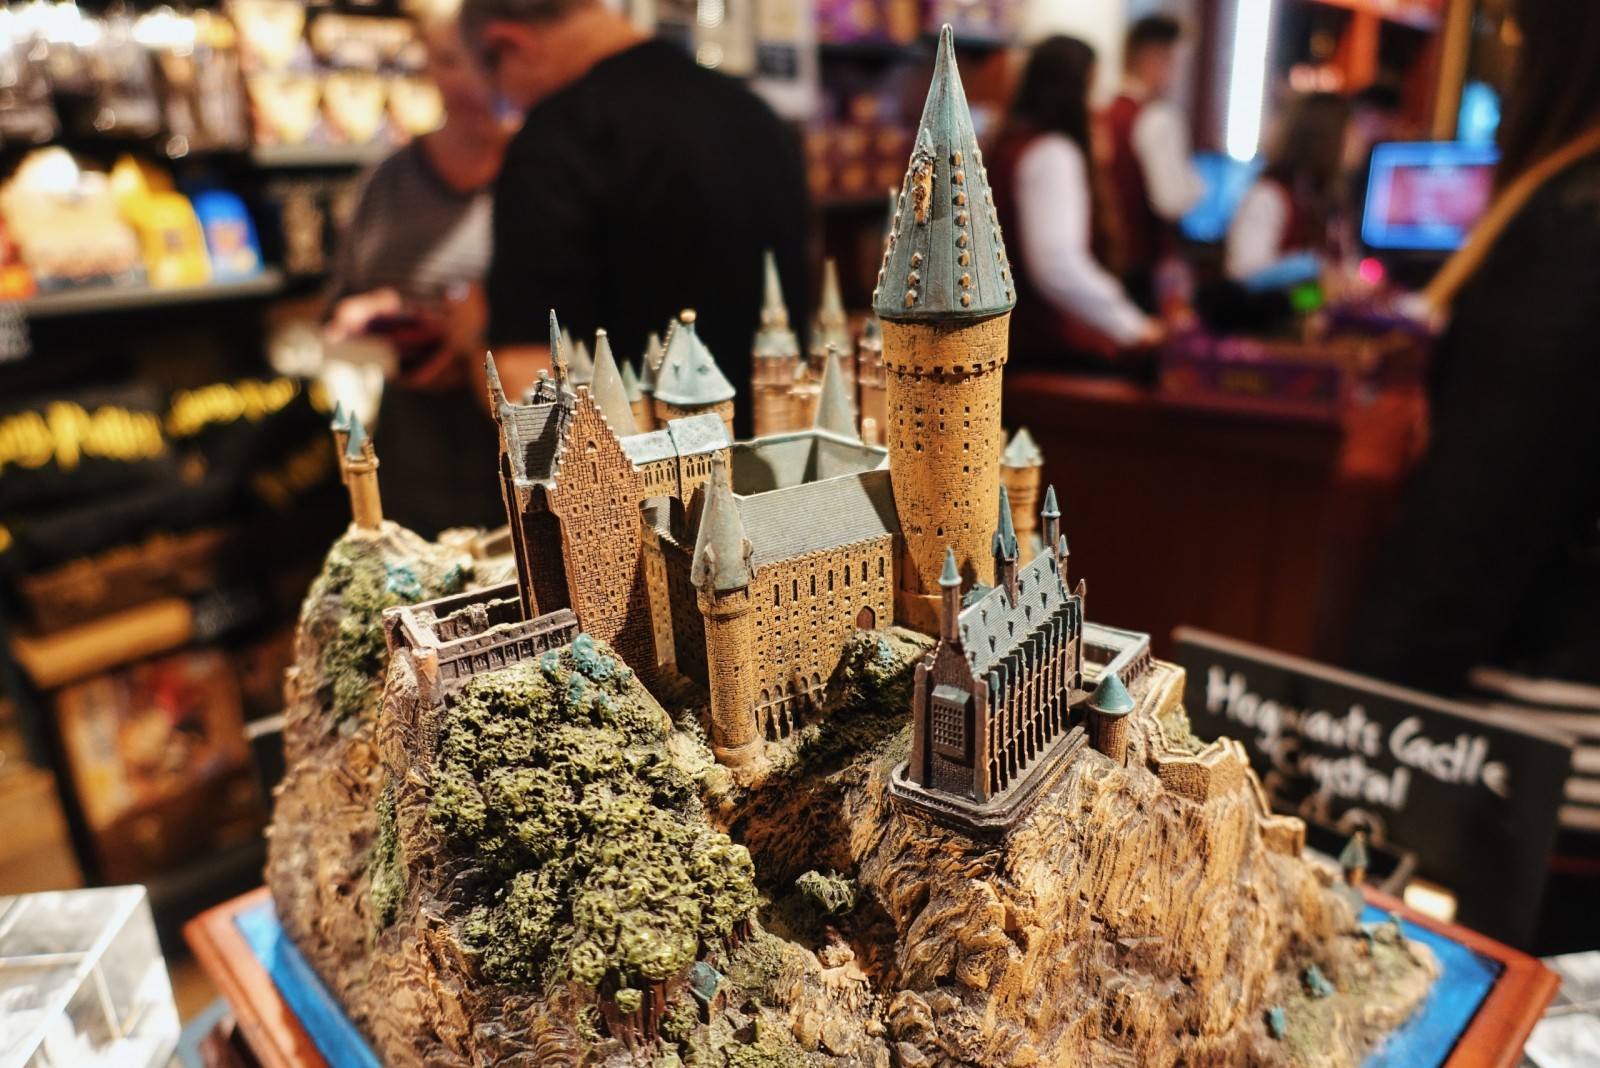 Hogwarts model at the Harry Potter Shop